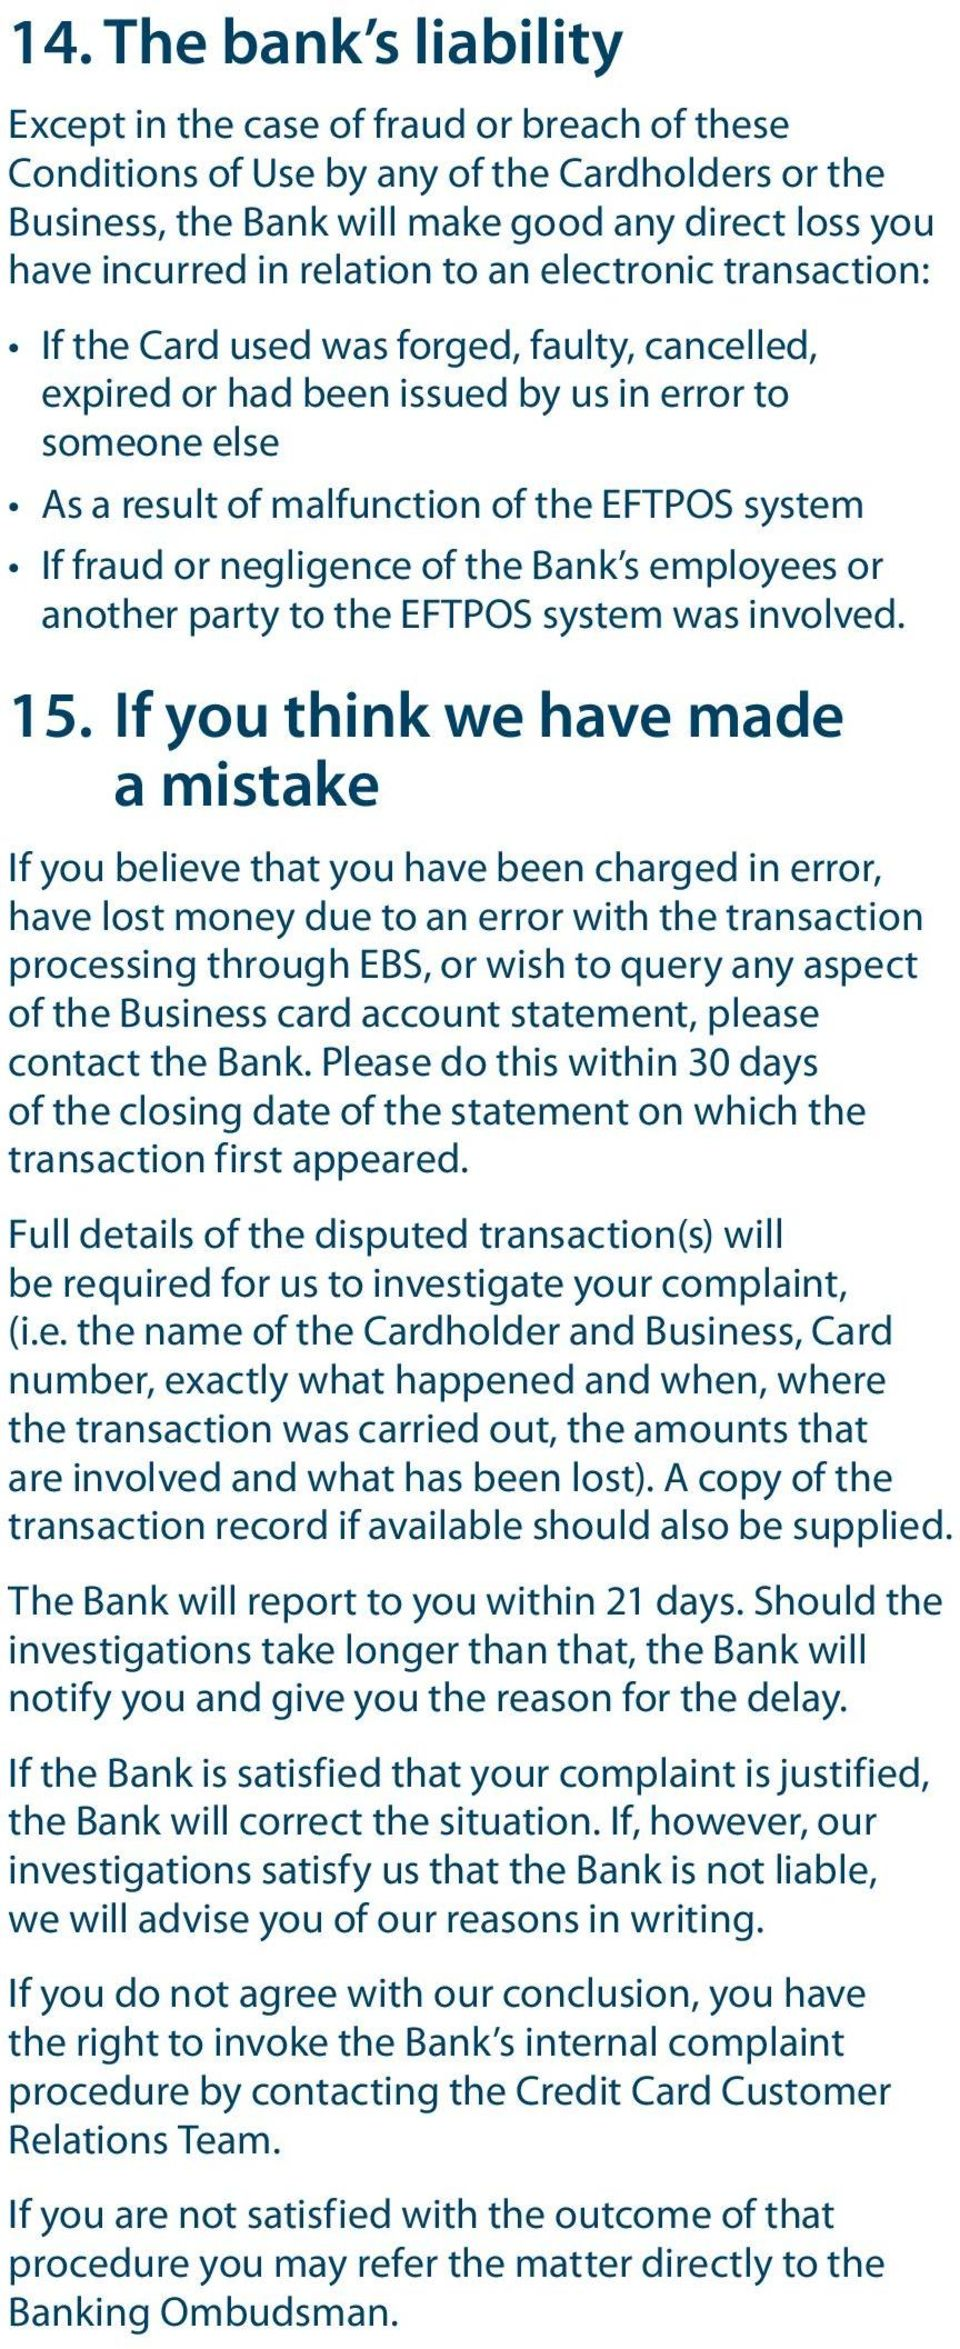 fraud or negligence of the Bank s employees or another party to the EFTPOS system was involved. 15.